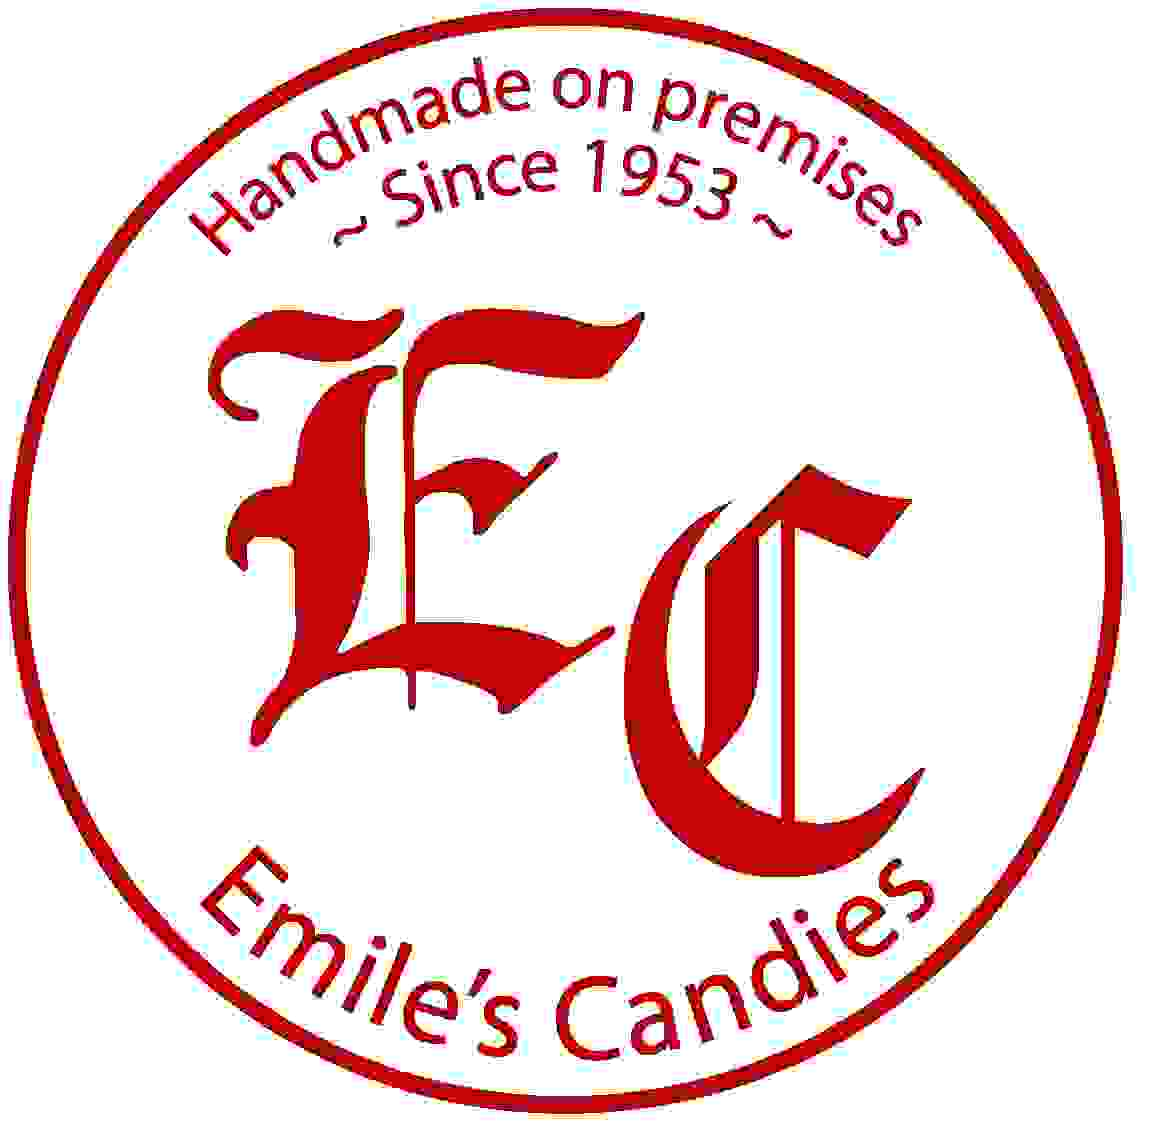 Gift Cards from Emile's Candies